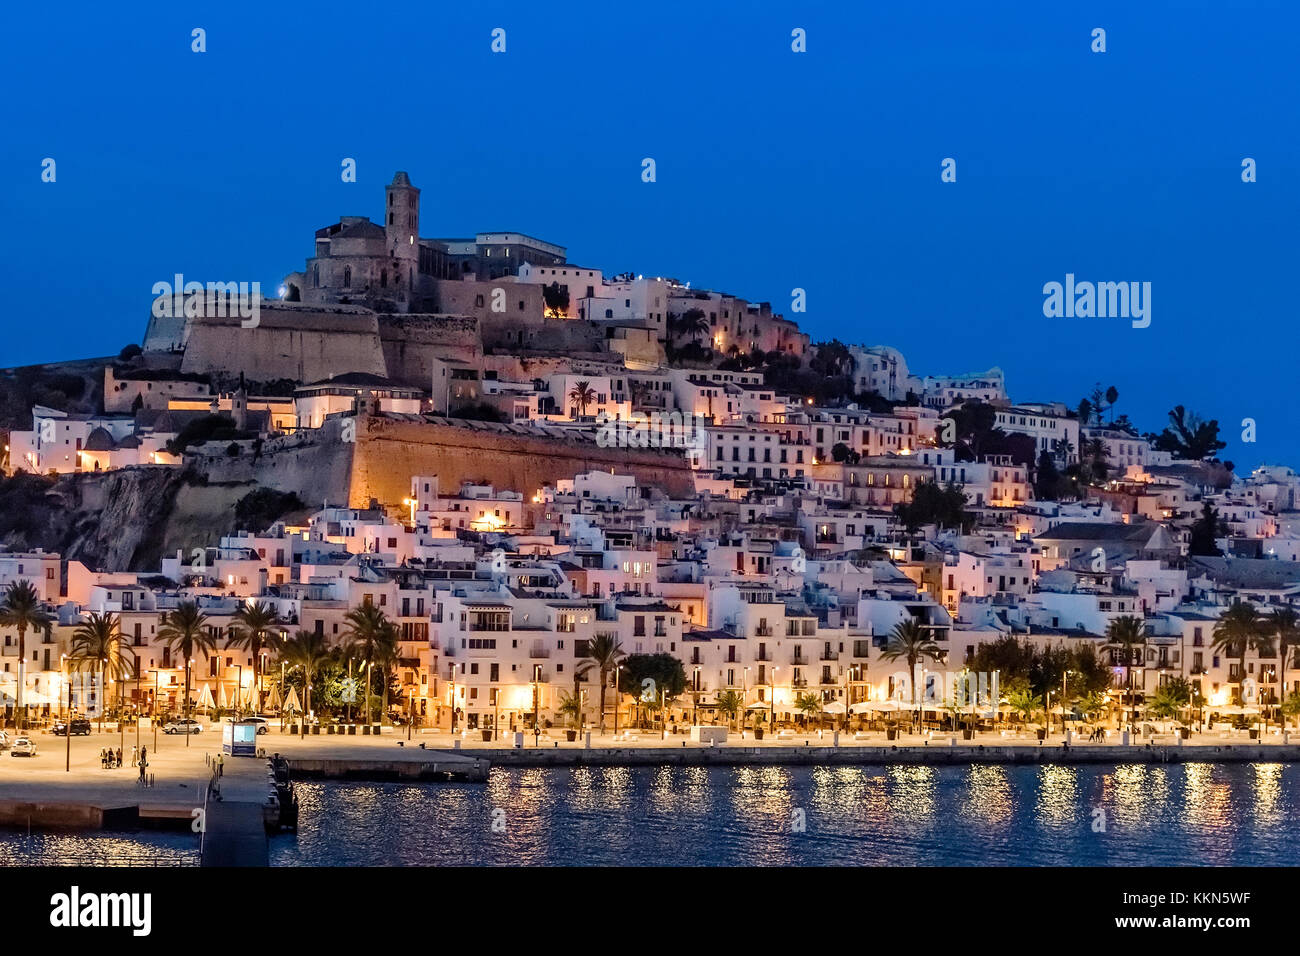 Ibiza Town and the cathedral of Santa Maria d'Eivissa at night, Ibiza, Balearic Islands, Spain. - Stock Image